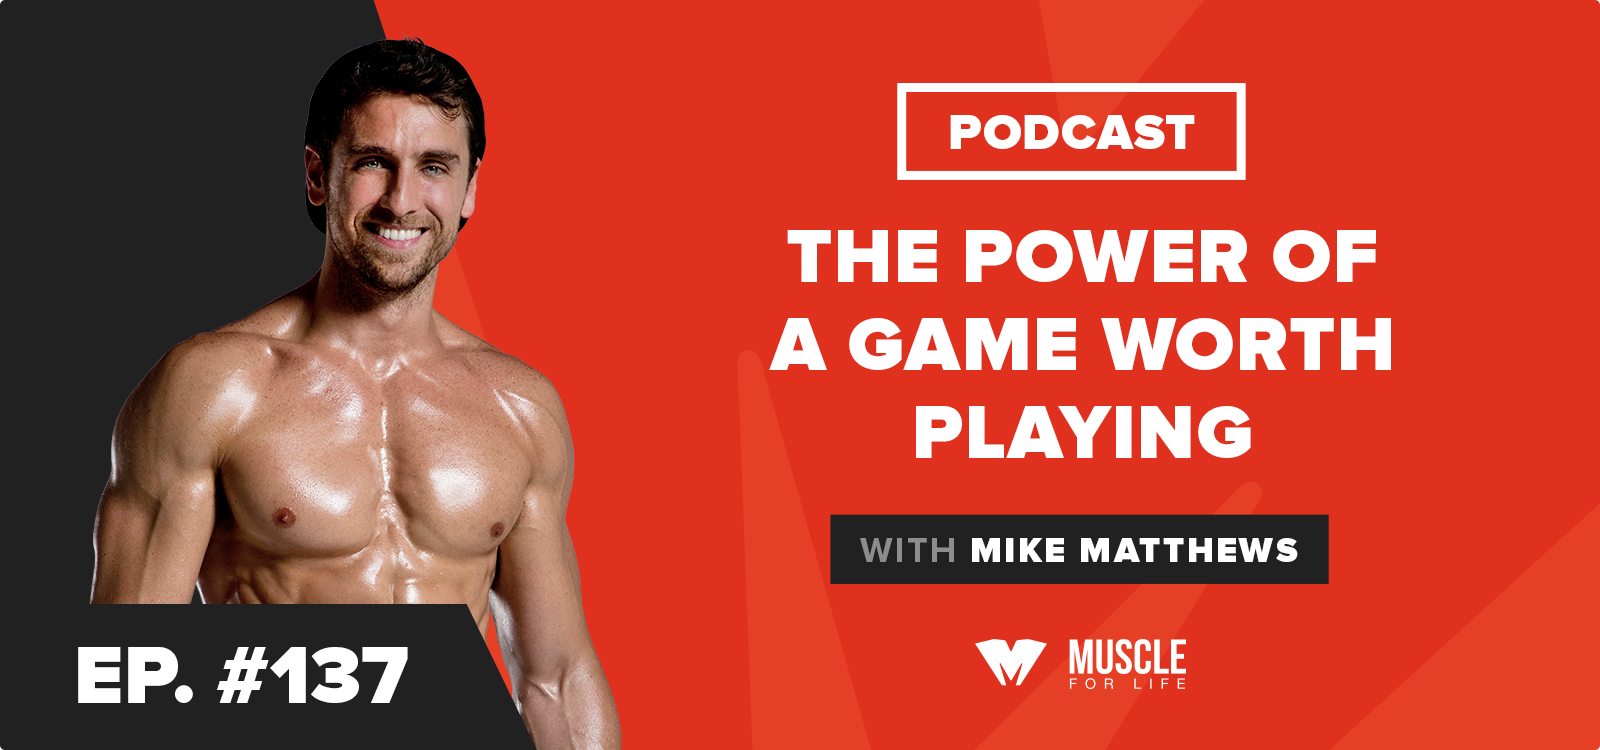 Motivation Monday: The Power of a Game Worth Playing